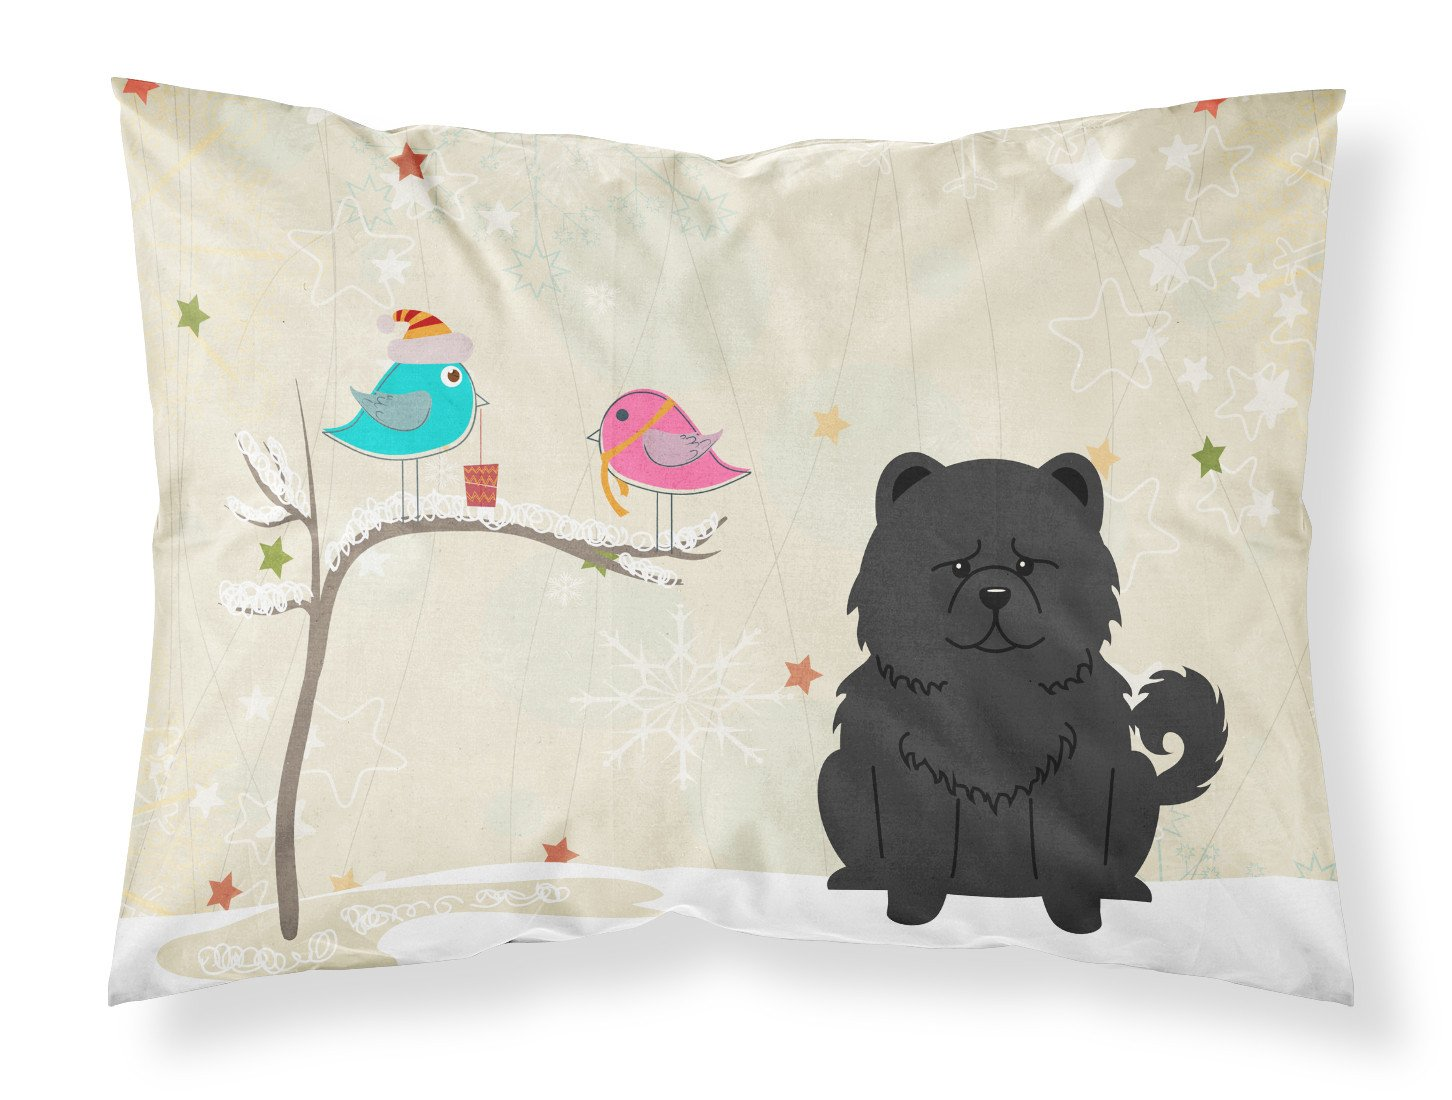 Christmas Presents between Friends Chow Chow Black Fabric Standard Pillowcase BB2615PILLOWCASE by Caroline's Treasures